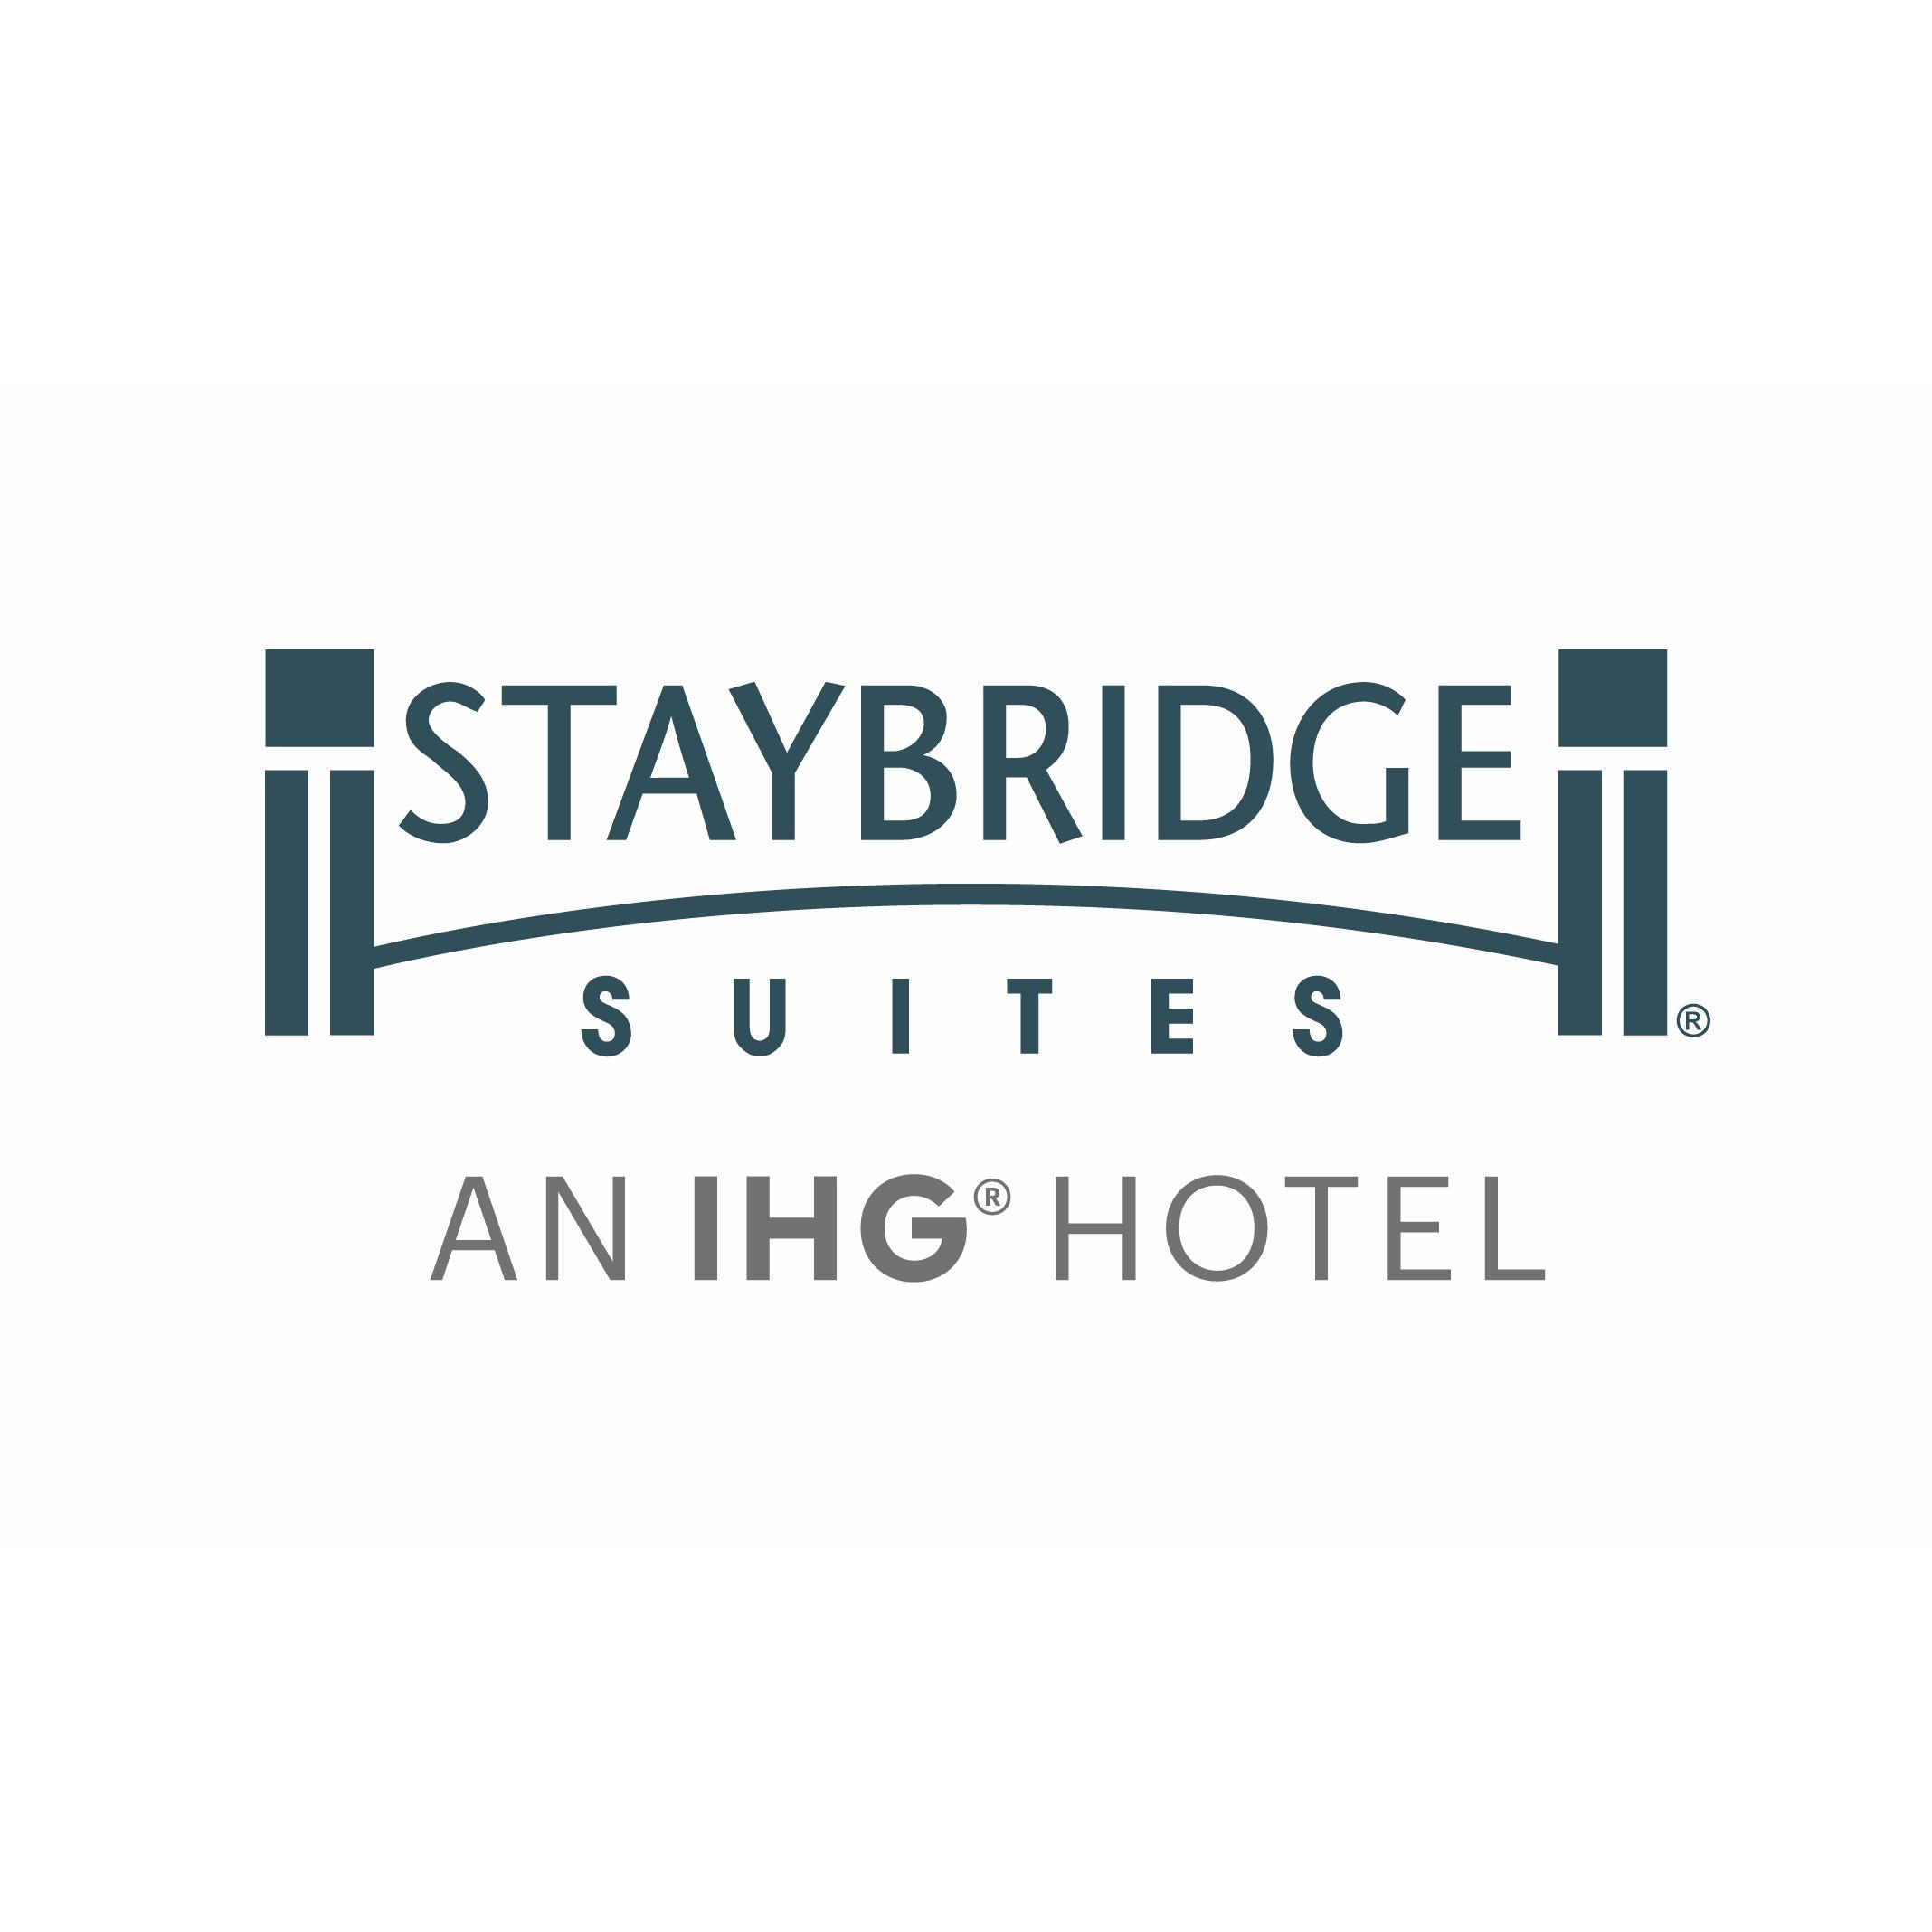 Staybridge Suites Allentown Bethlehem Airport - Allentown, PA - Hotels & Motels